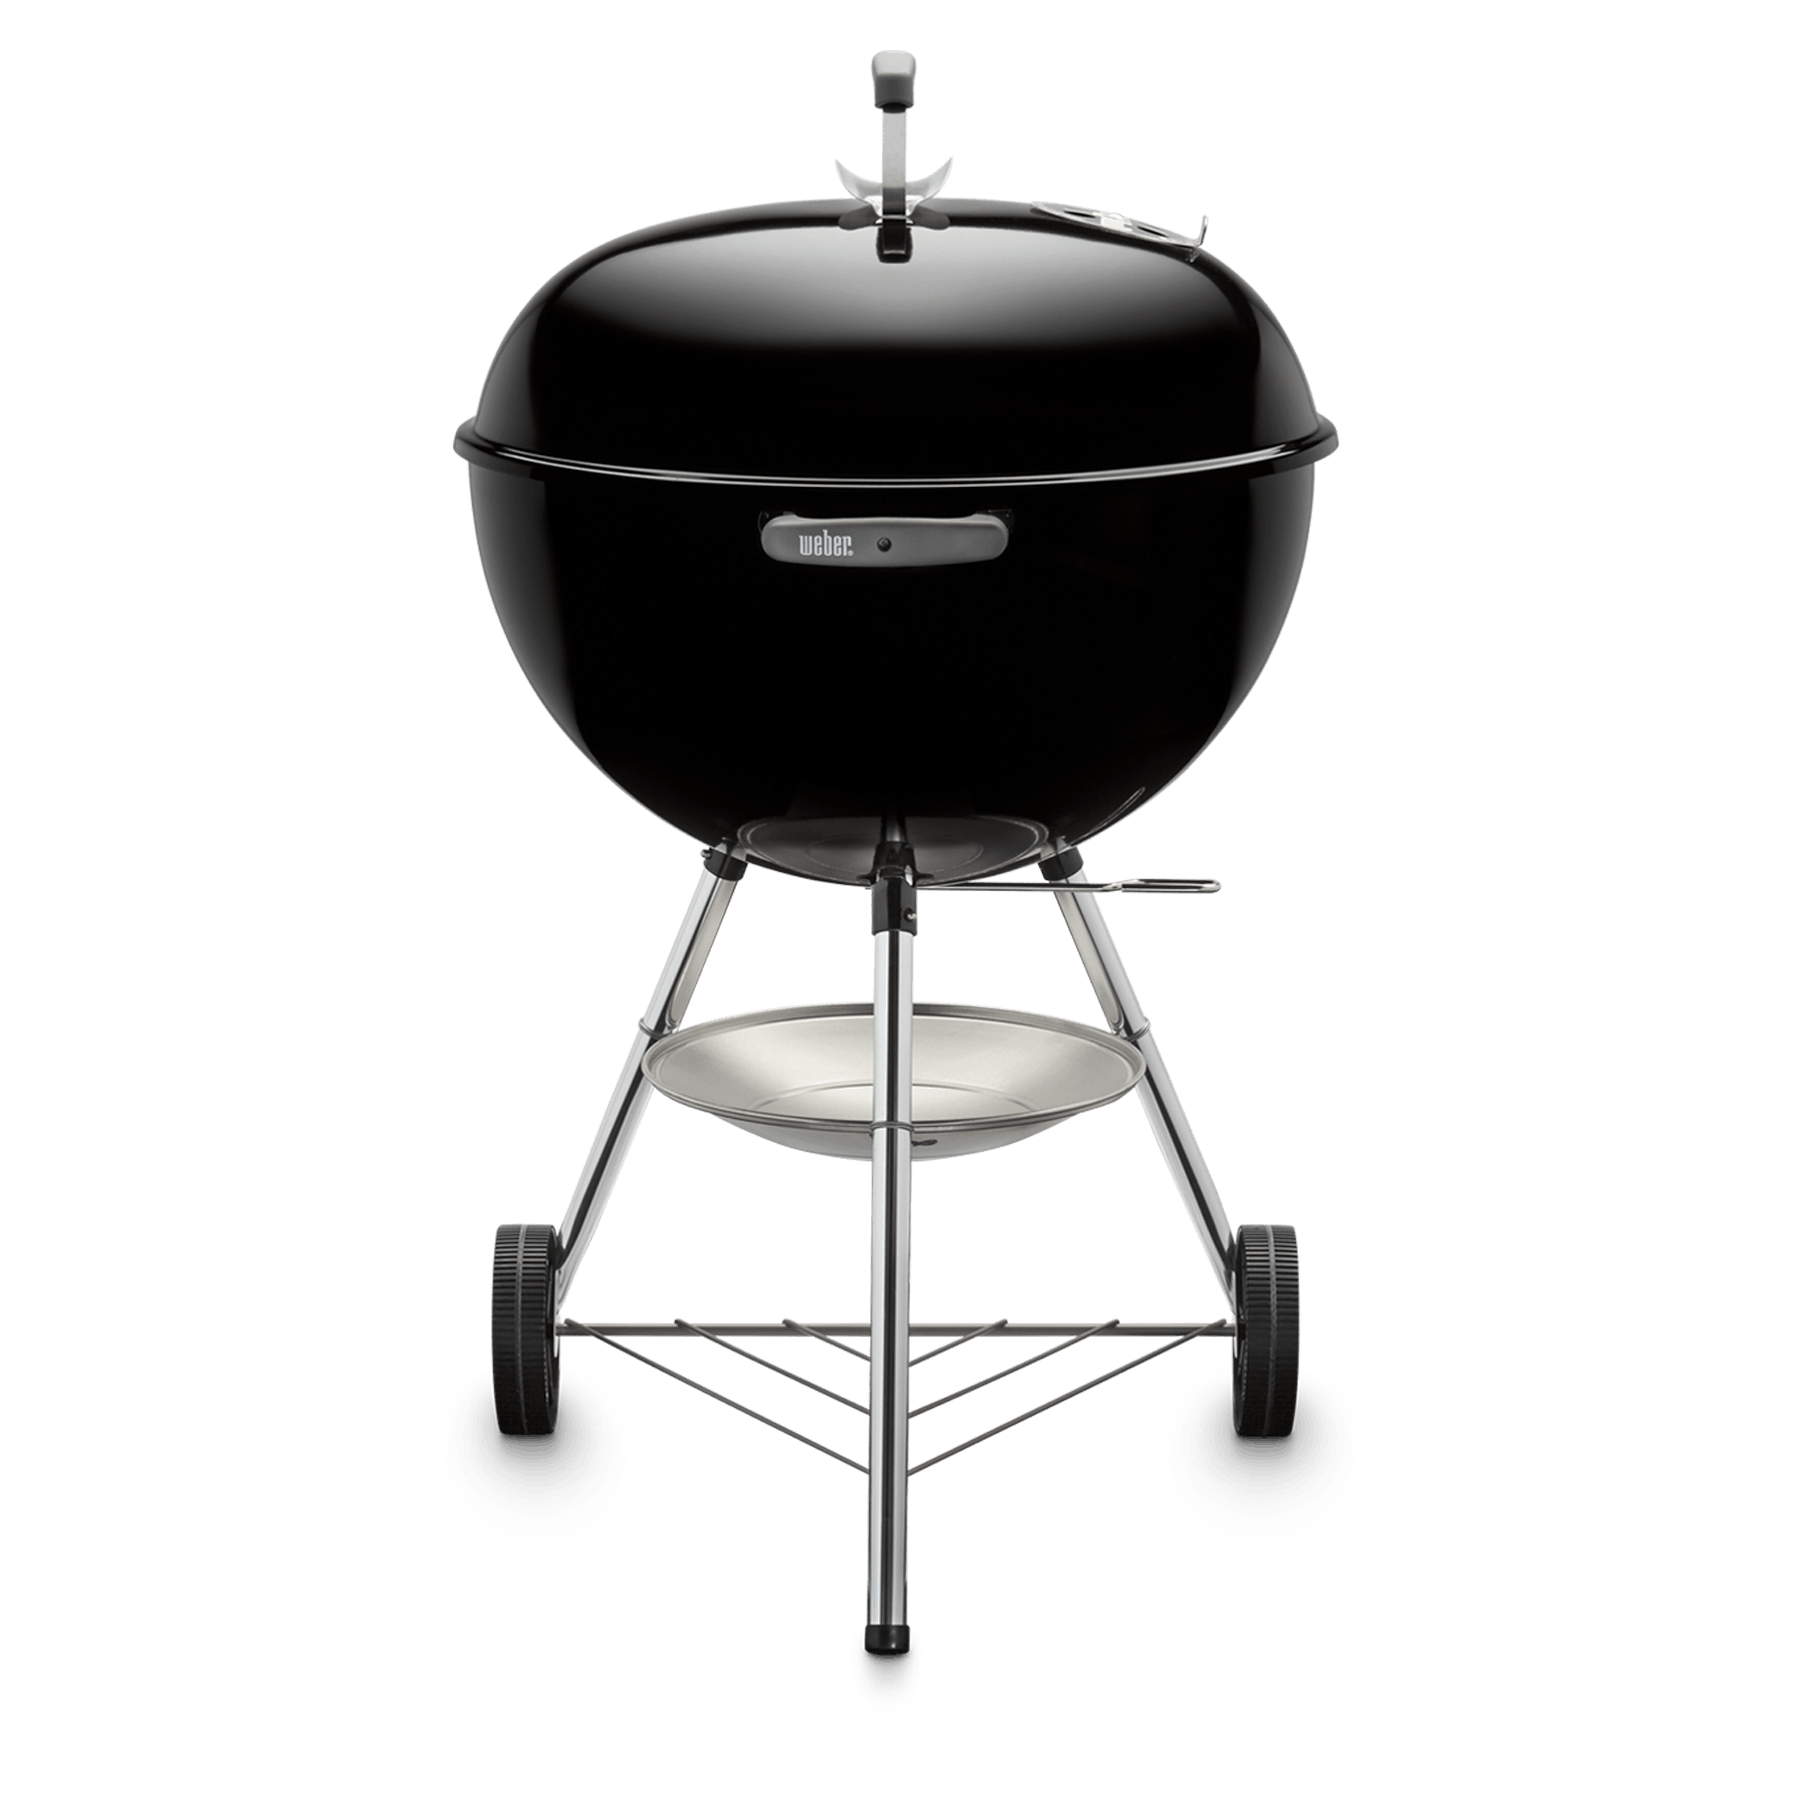 Original Kettle Charcoal Grill 22""